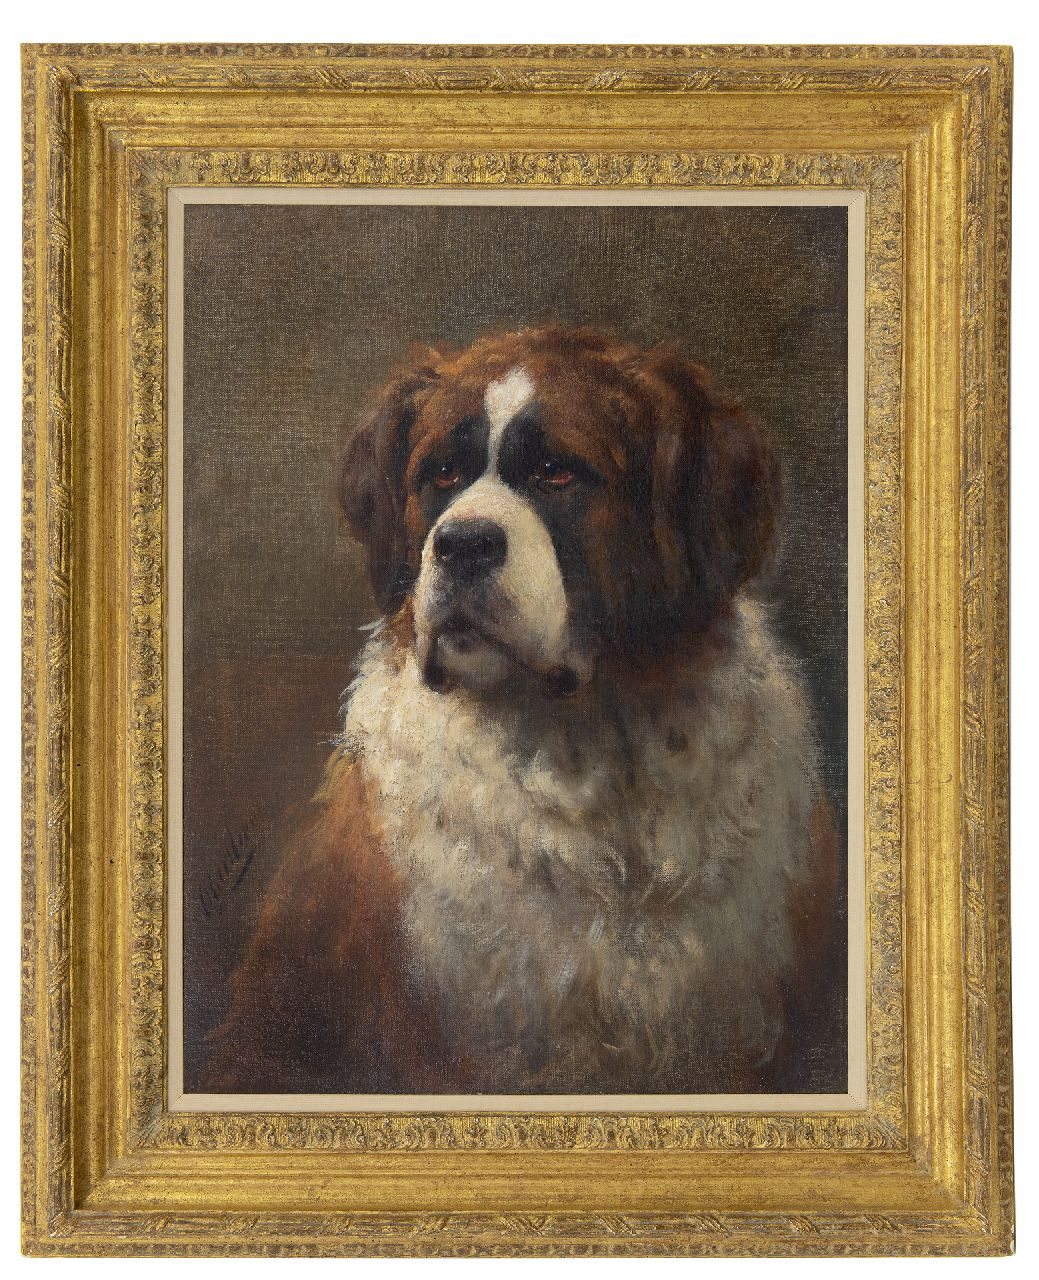 Eerelman O.  | Otto Eerelman | Paintings offered for sale | Portrait of a Saint Bernard, oil on canvas 60.4 x 46.0 cm, signed l.l.